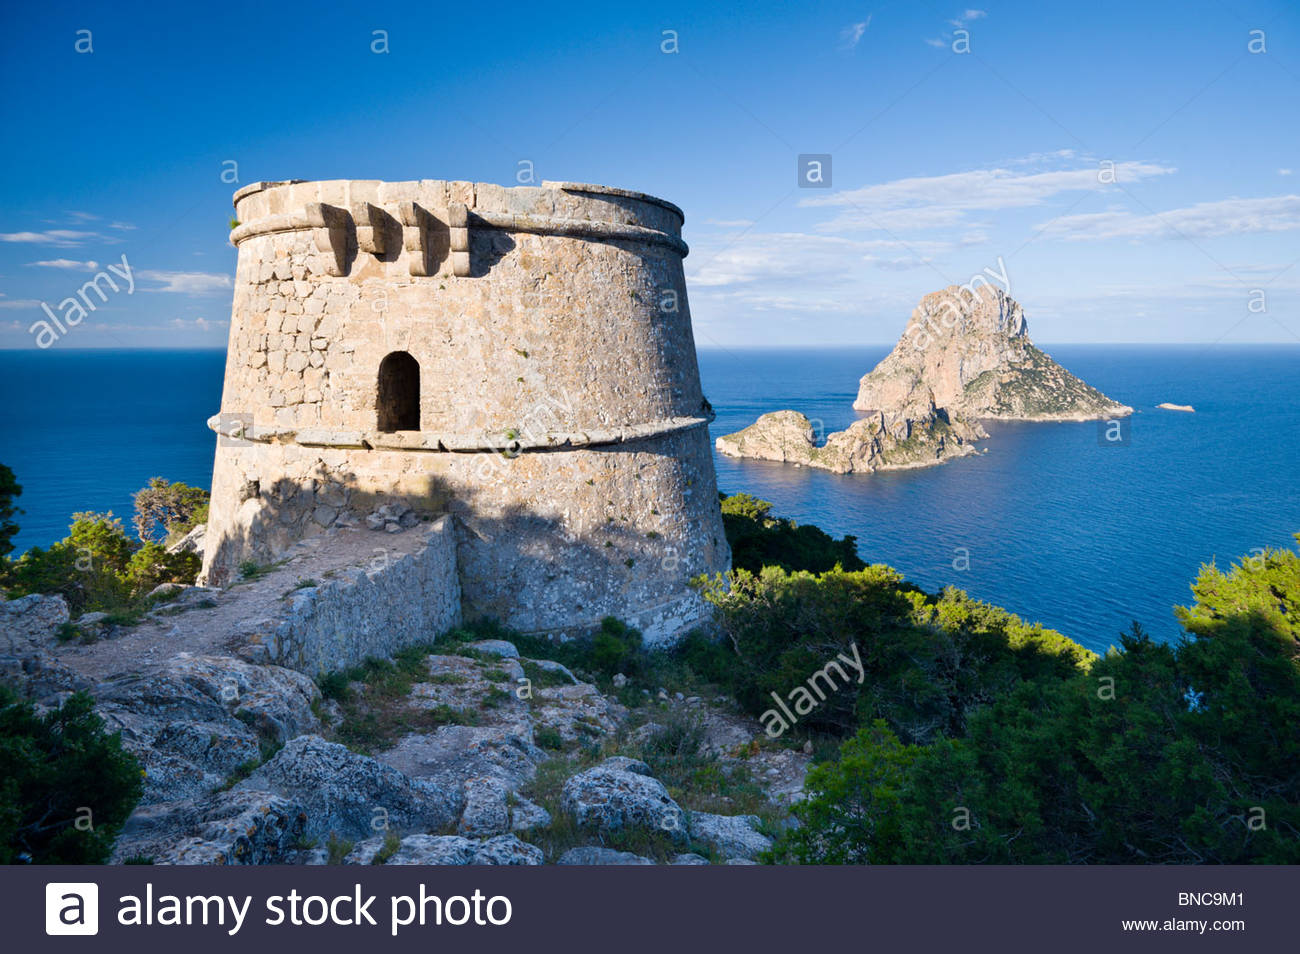 Es Vedra and Es Vedranell islands from Torre des Savinar, Ibiza, Spain. - Stock Image